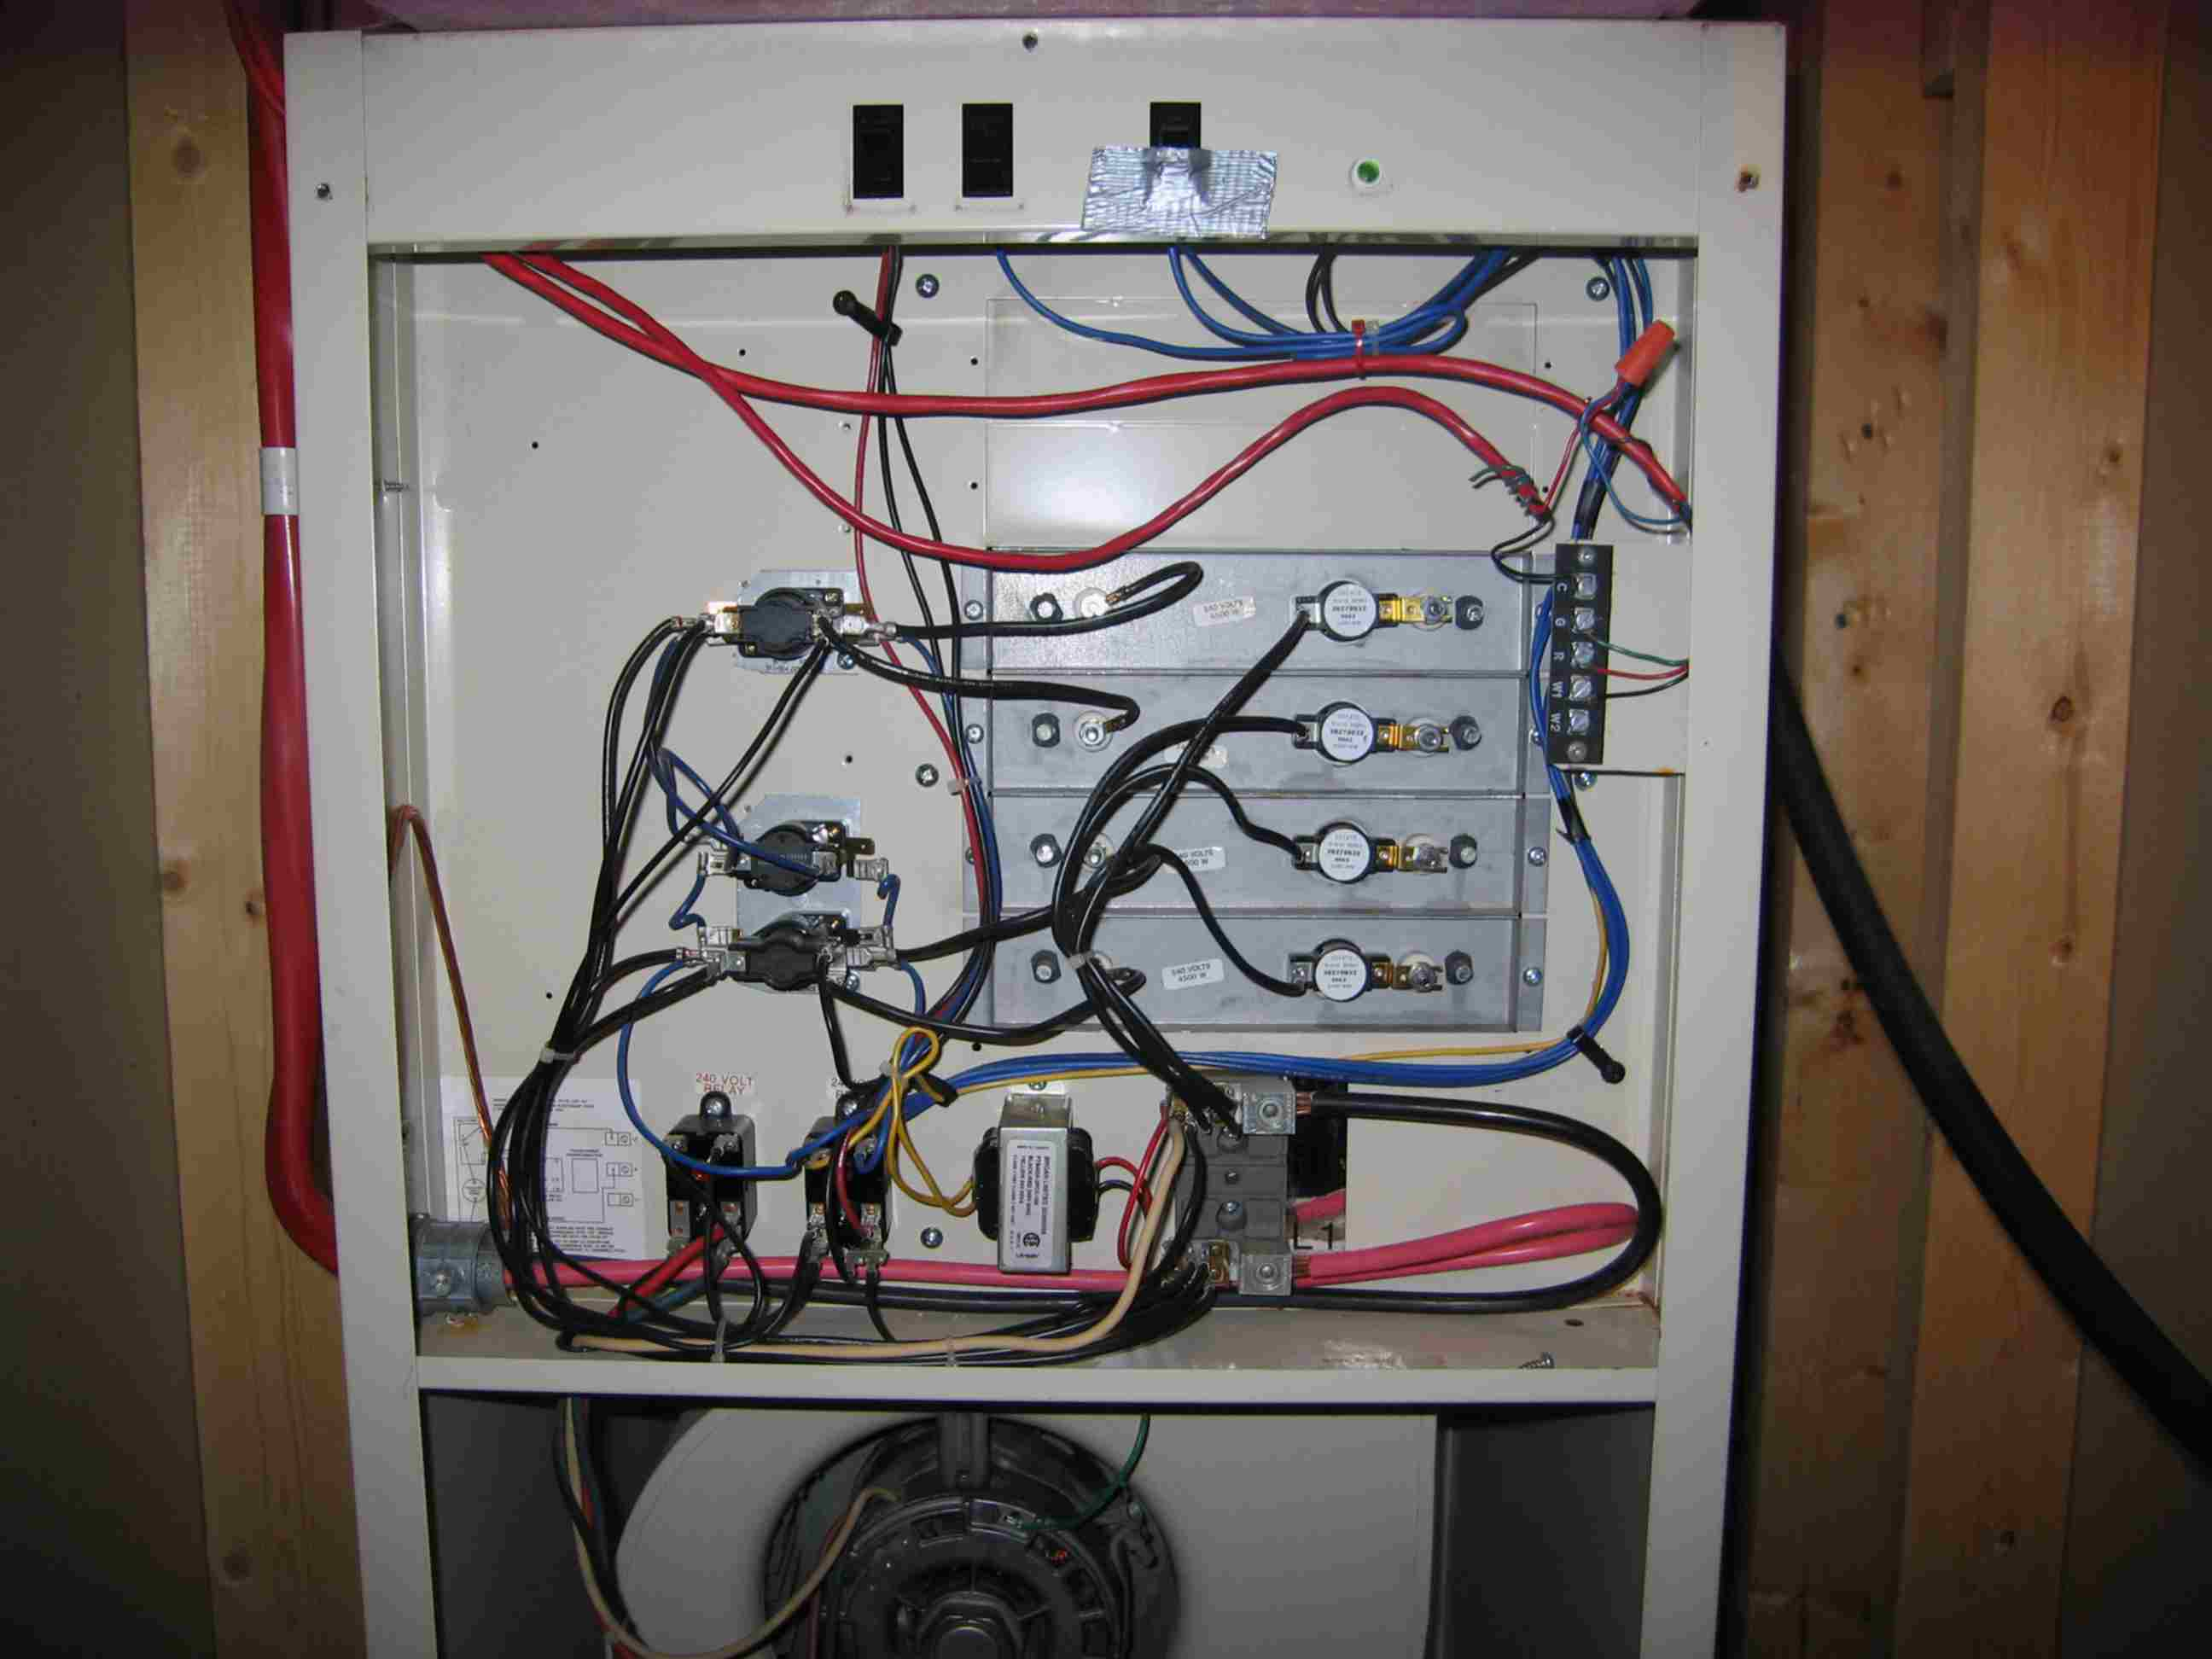 payne furnace wiring diagram thermostat free download 2000 silverado 1500 stereo for gas get image